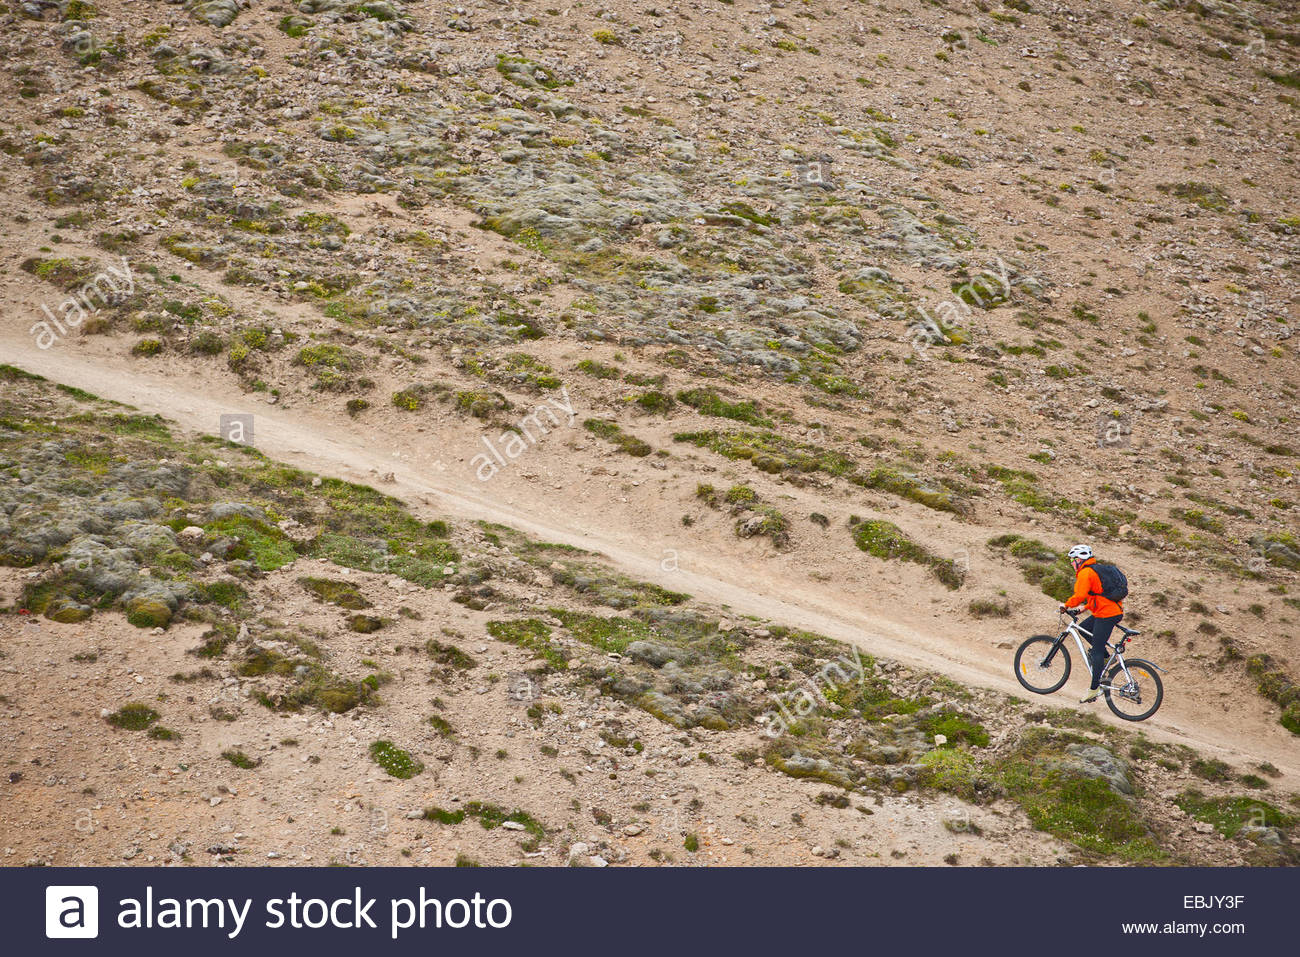 Male mountain biker cycling up steep dirt track, Reykjadalur valley, South West Iceland - Stock Image